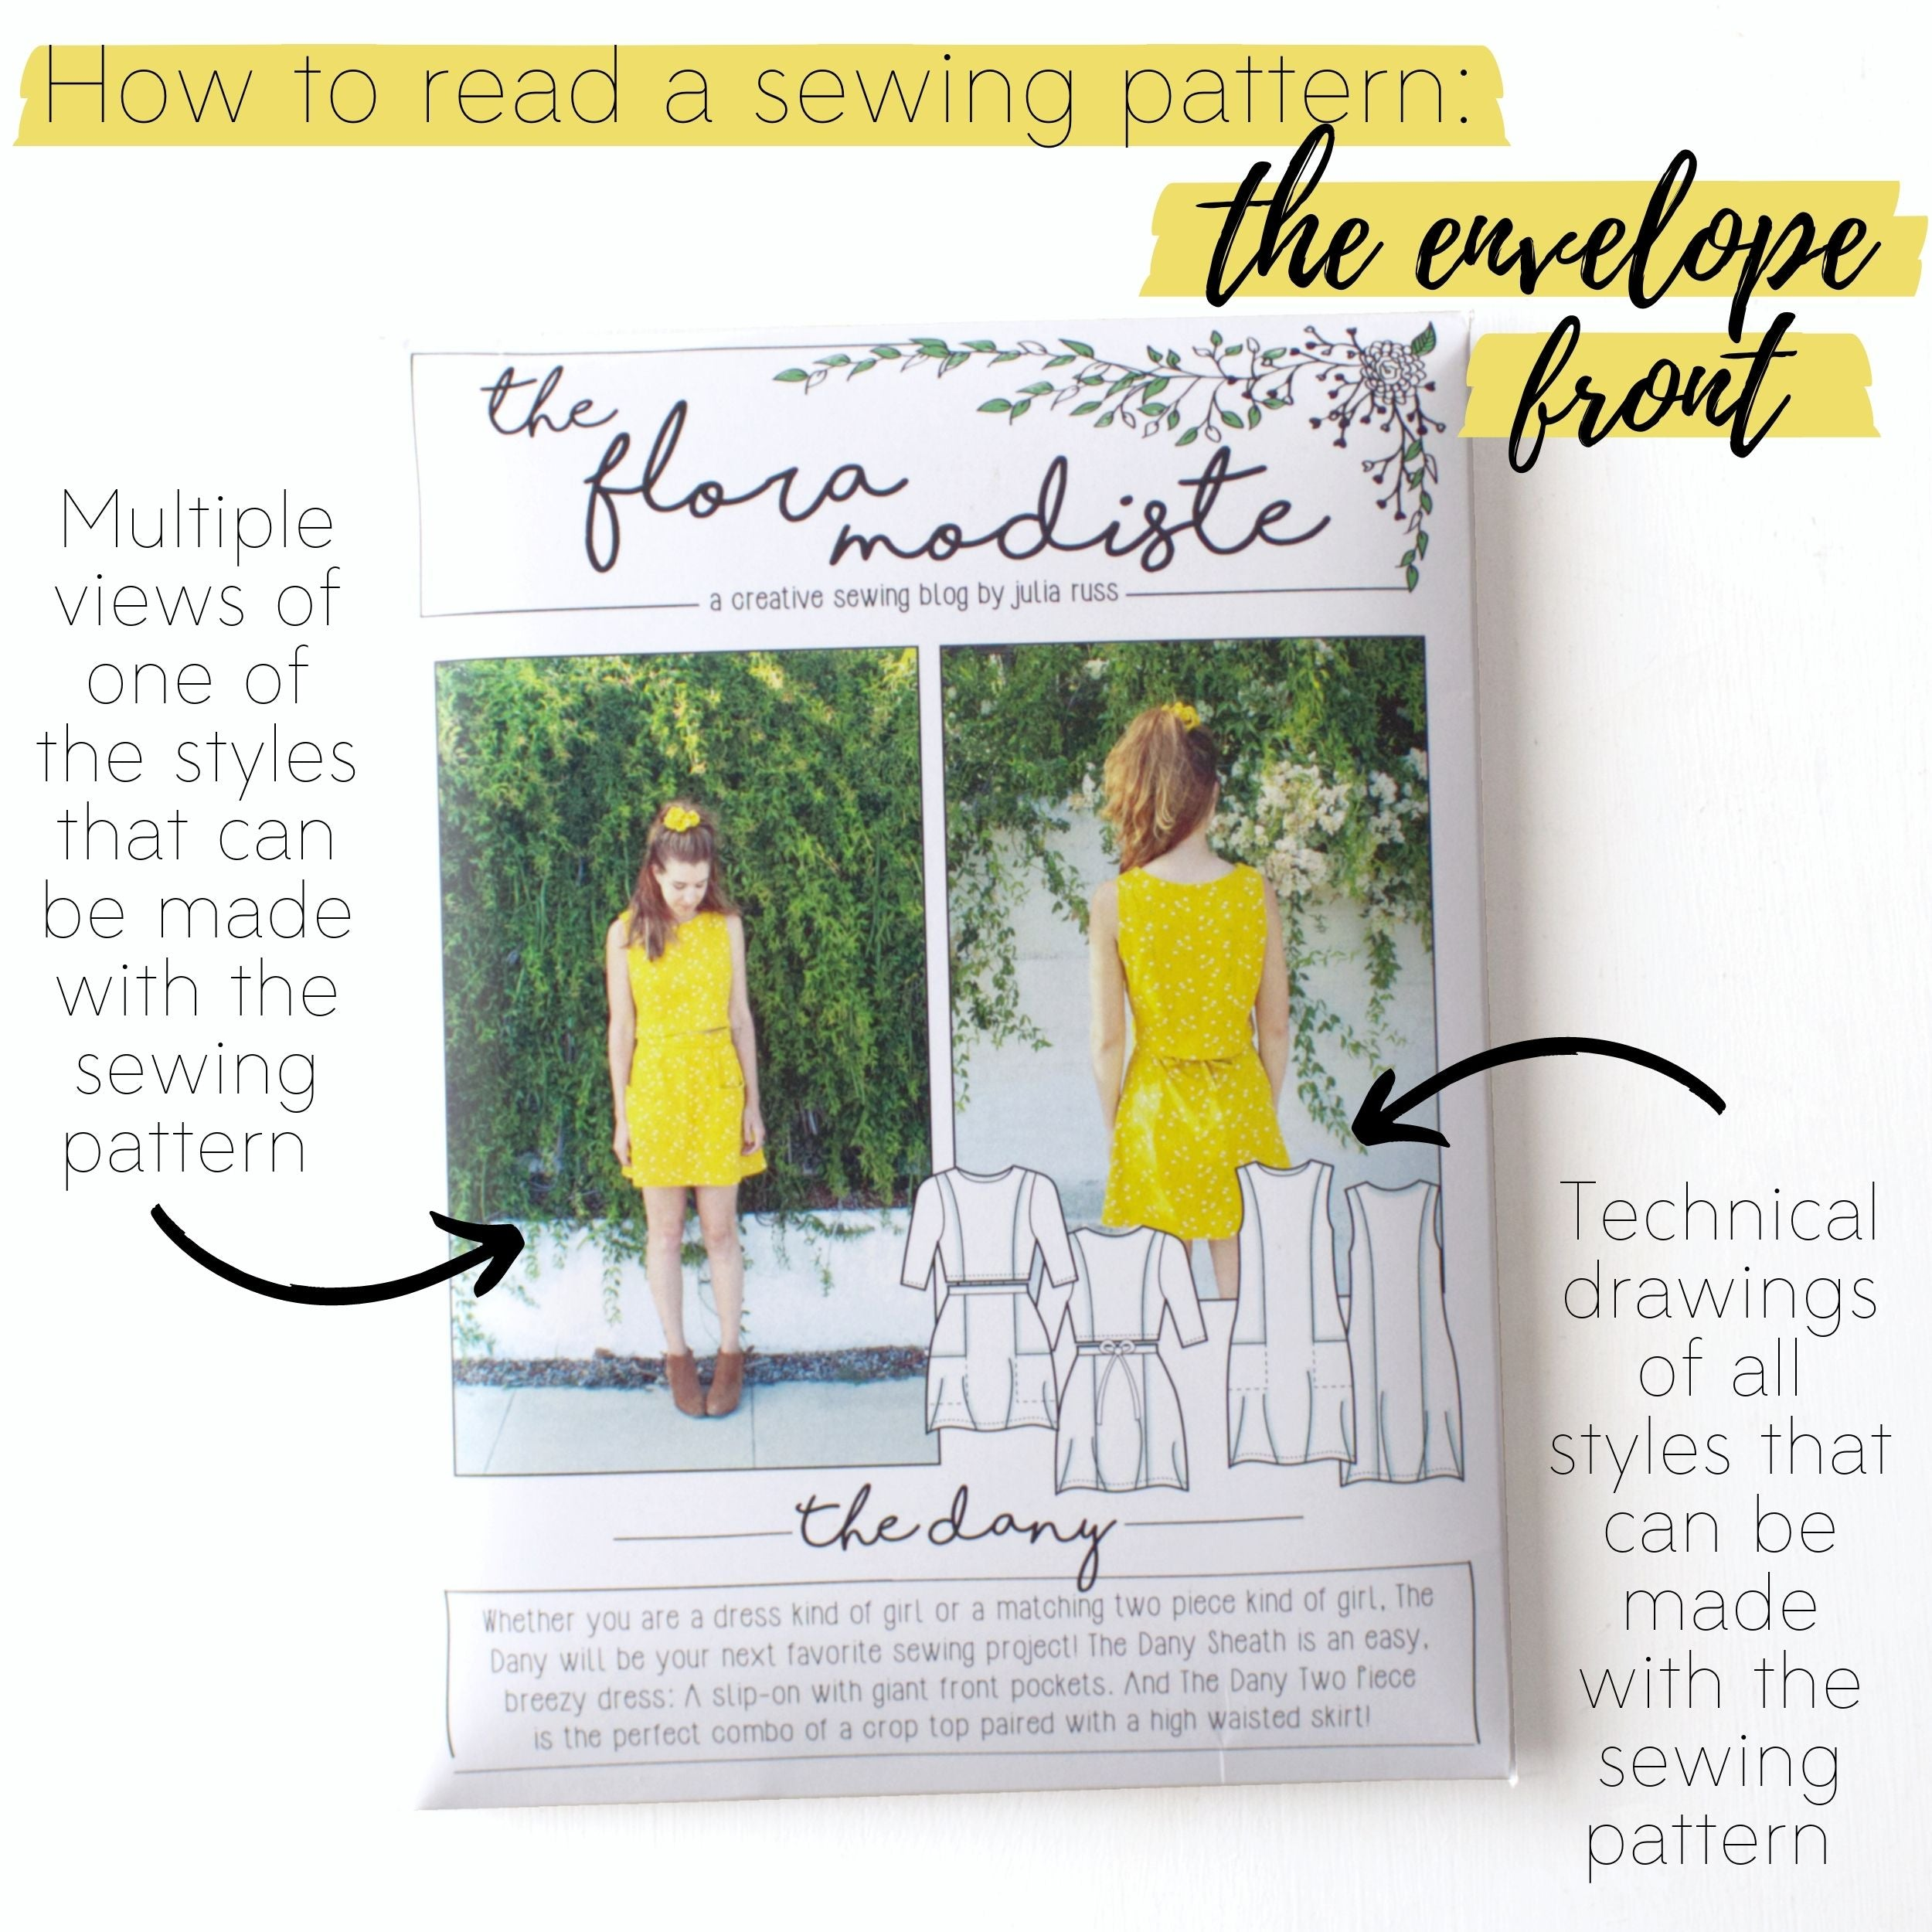 How to read a sewing pattern: The envelope front